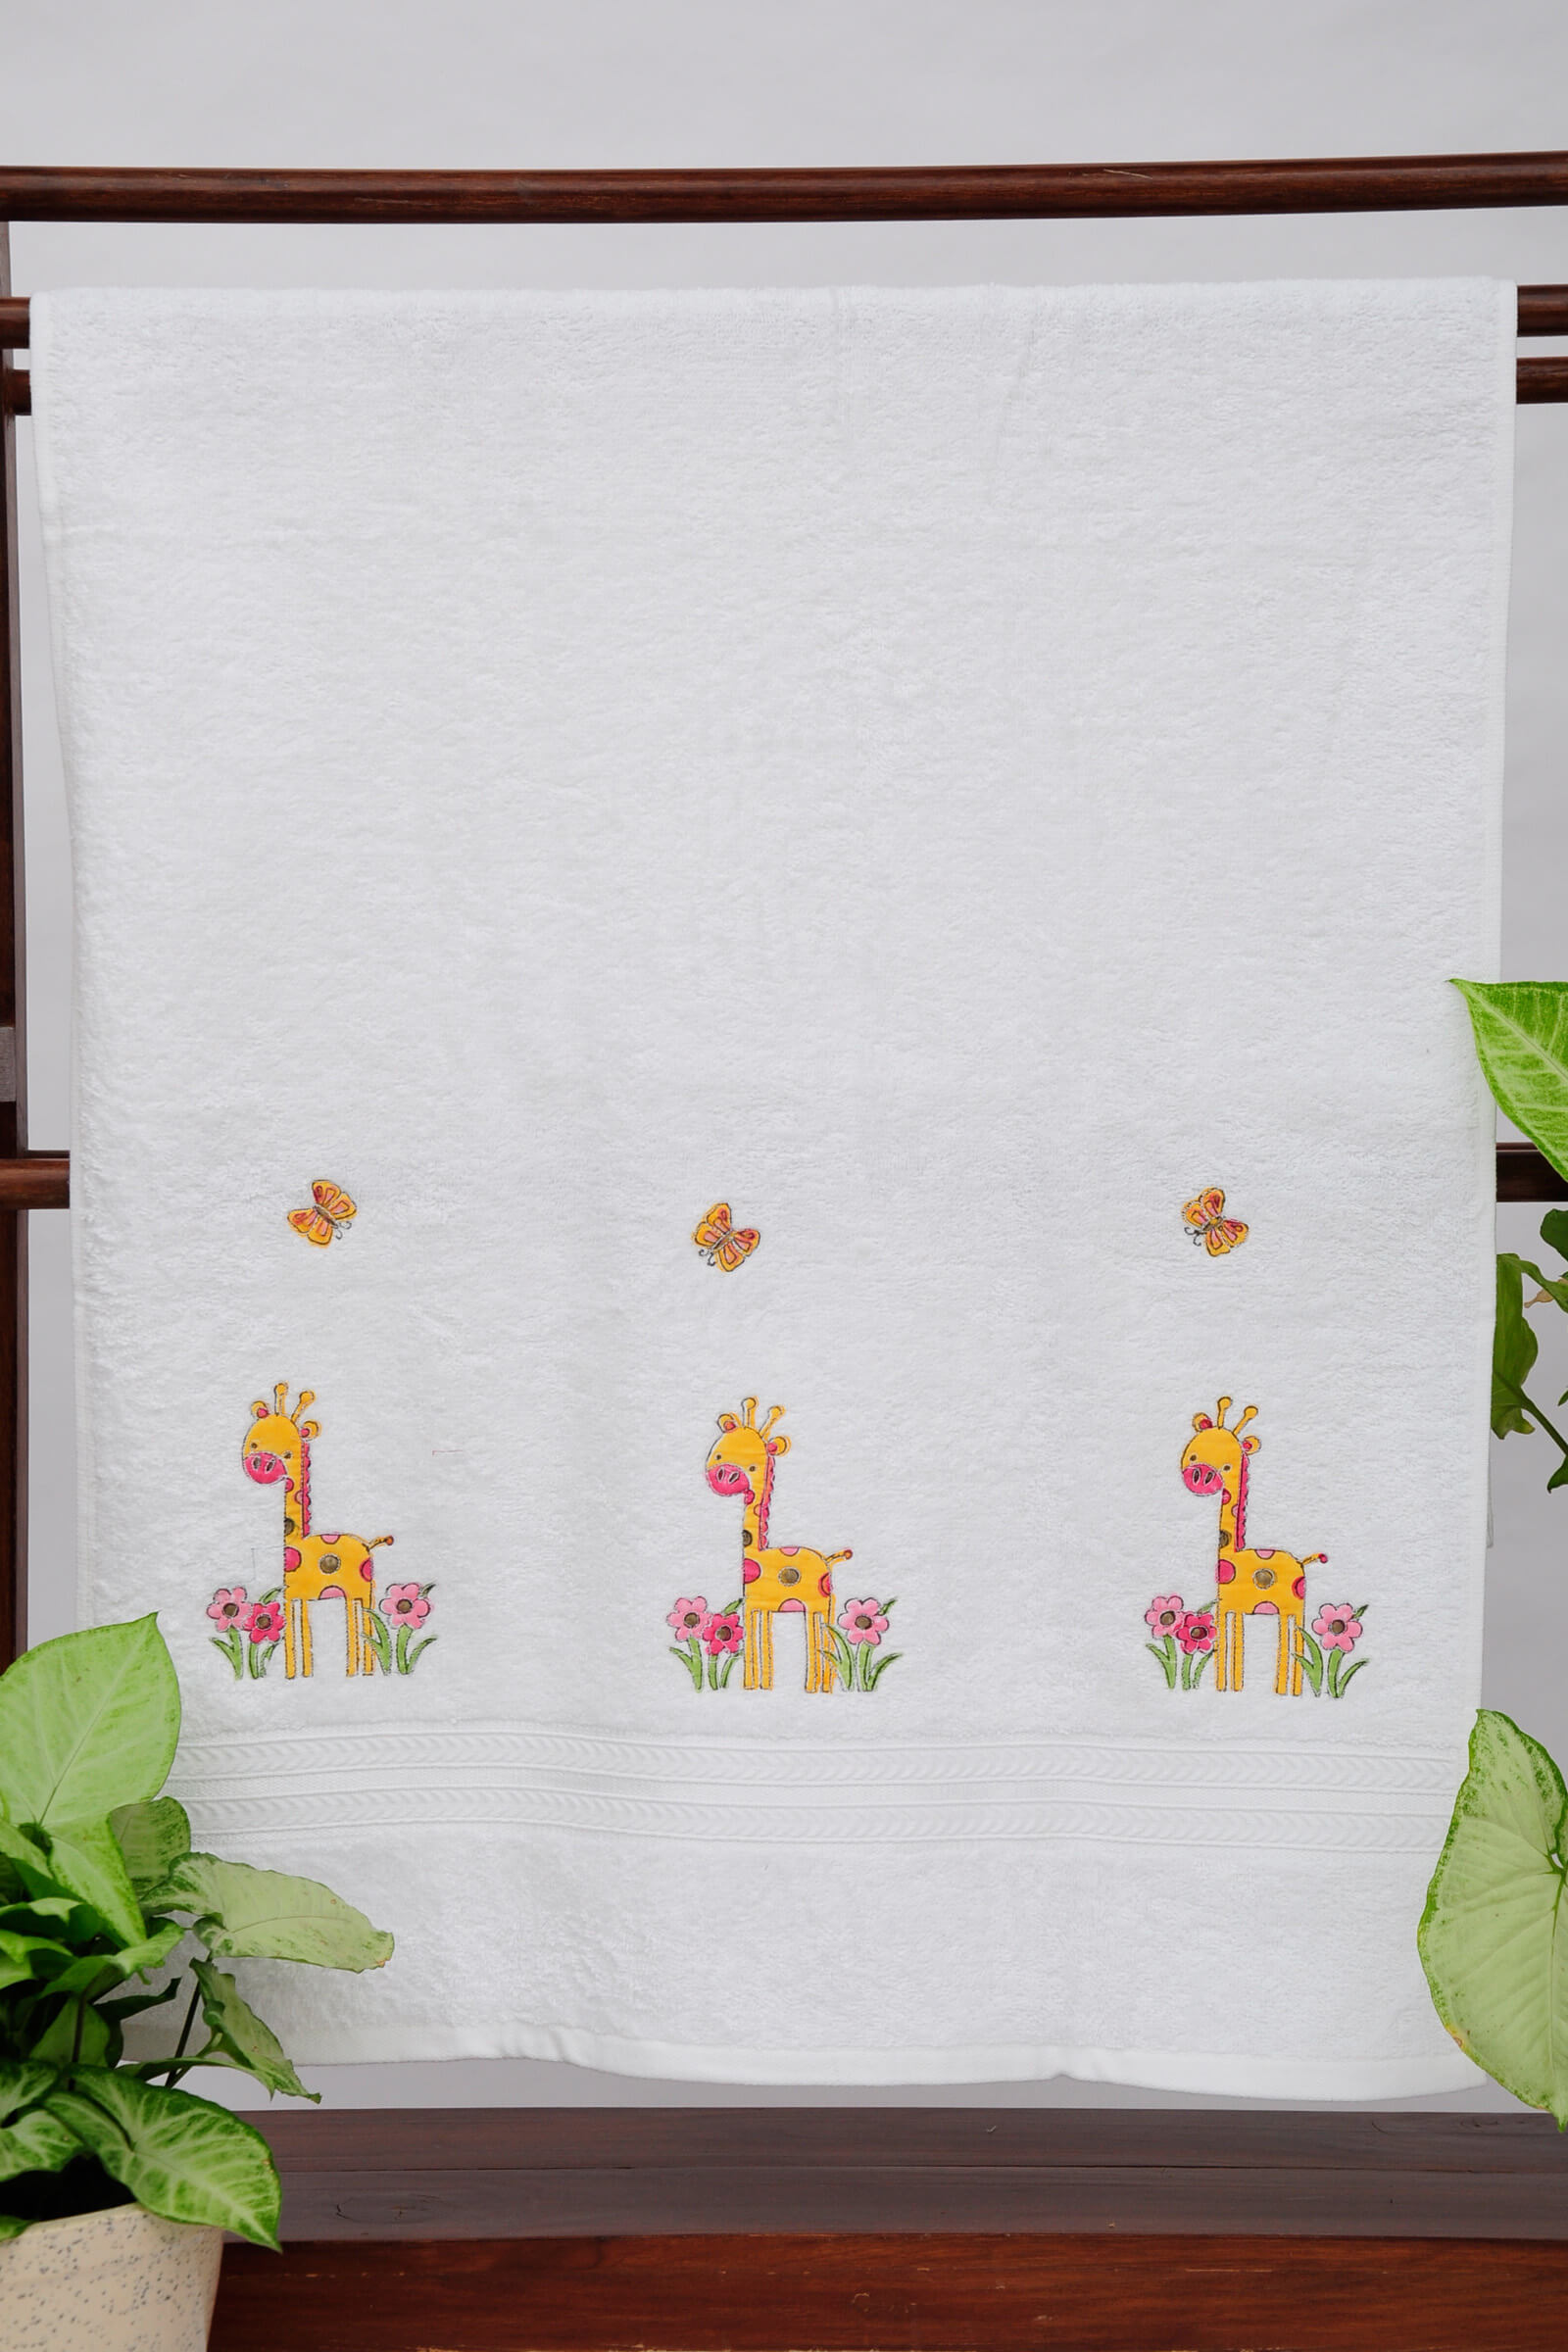 Giraffe With Flowers Towel